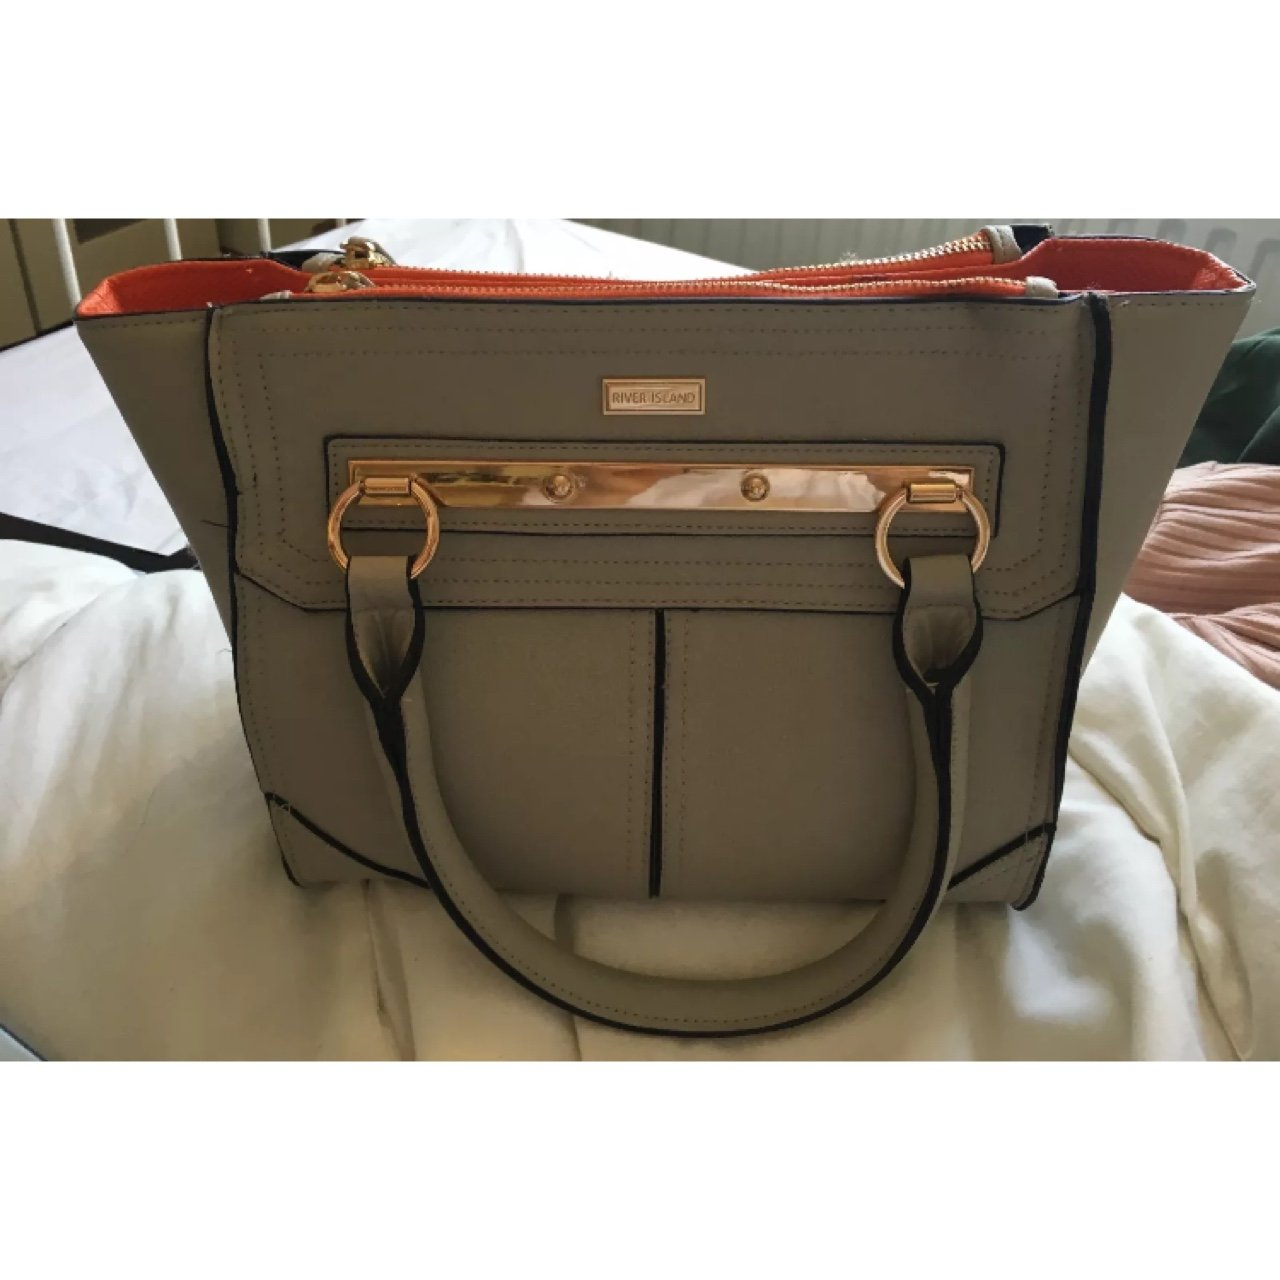 8813aa0e8299 River Island Bag never used but with no tags! Bought for It - Depop